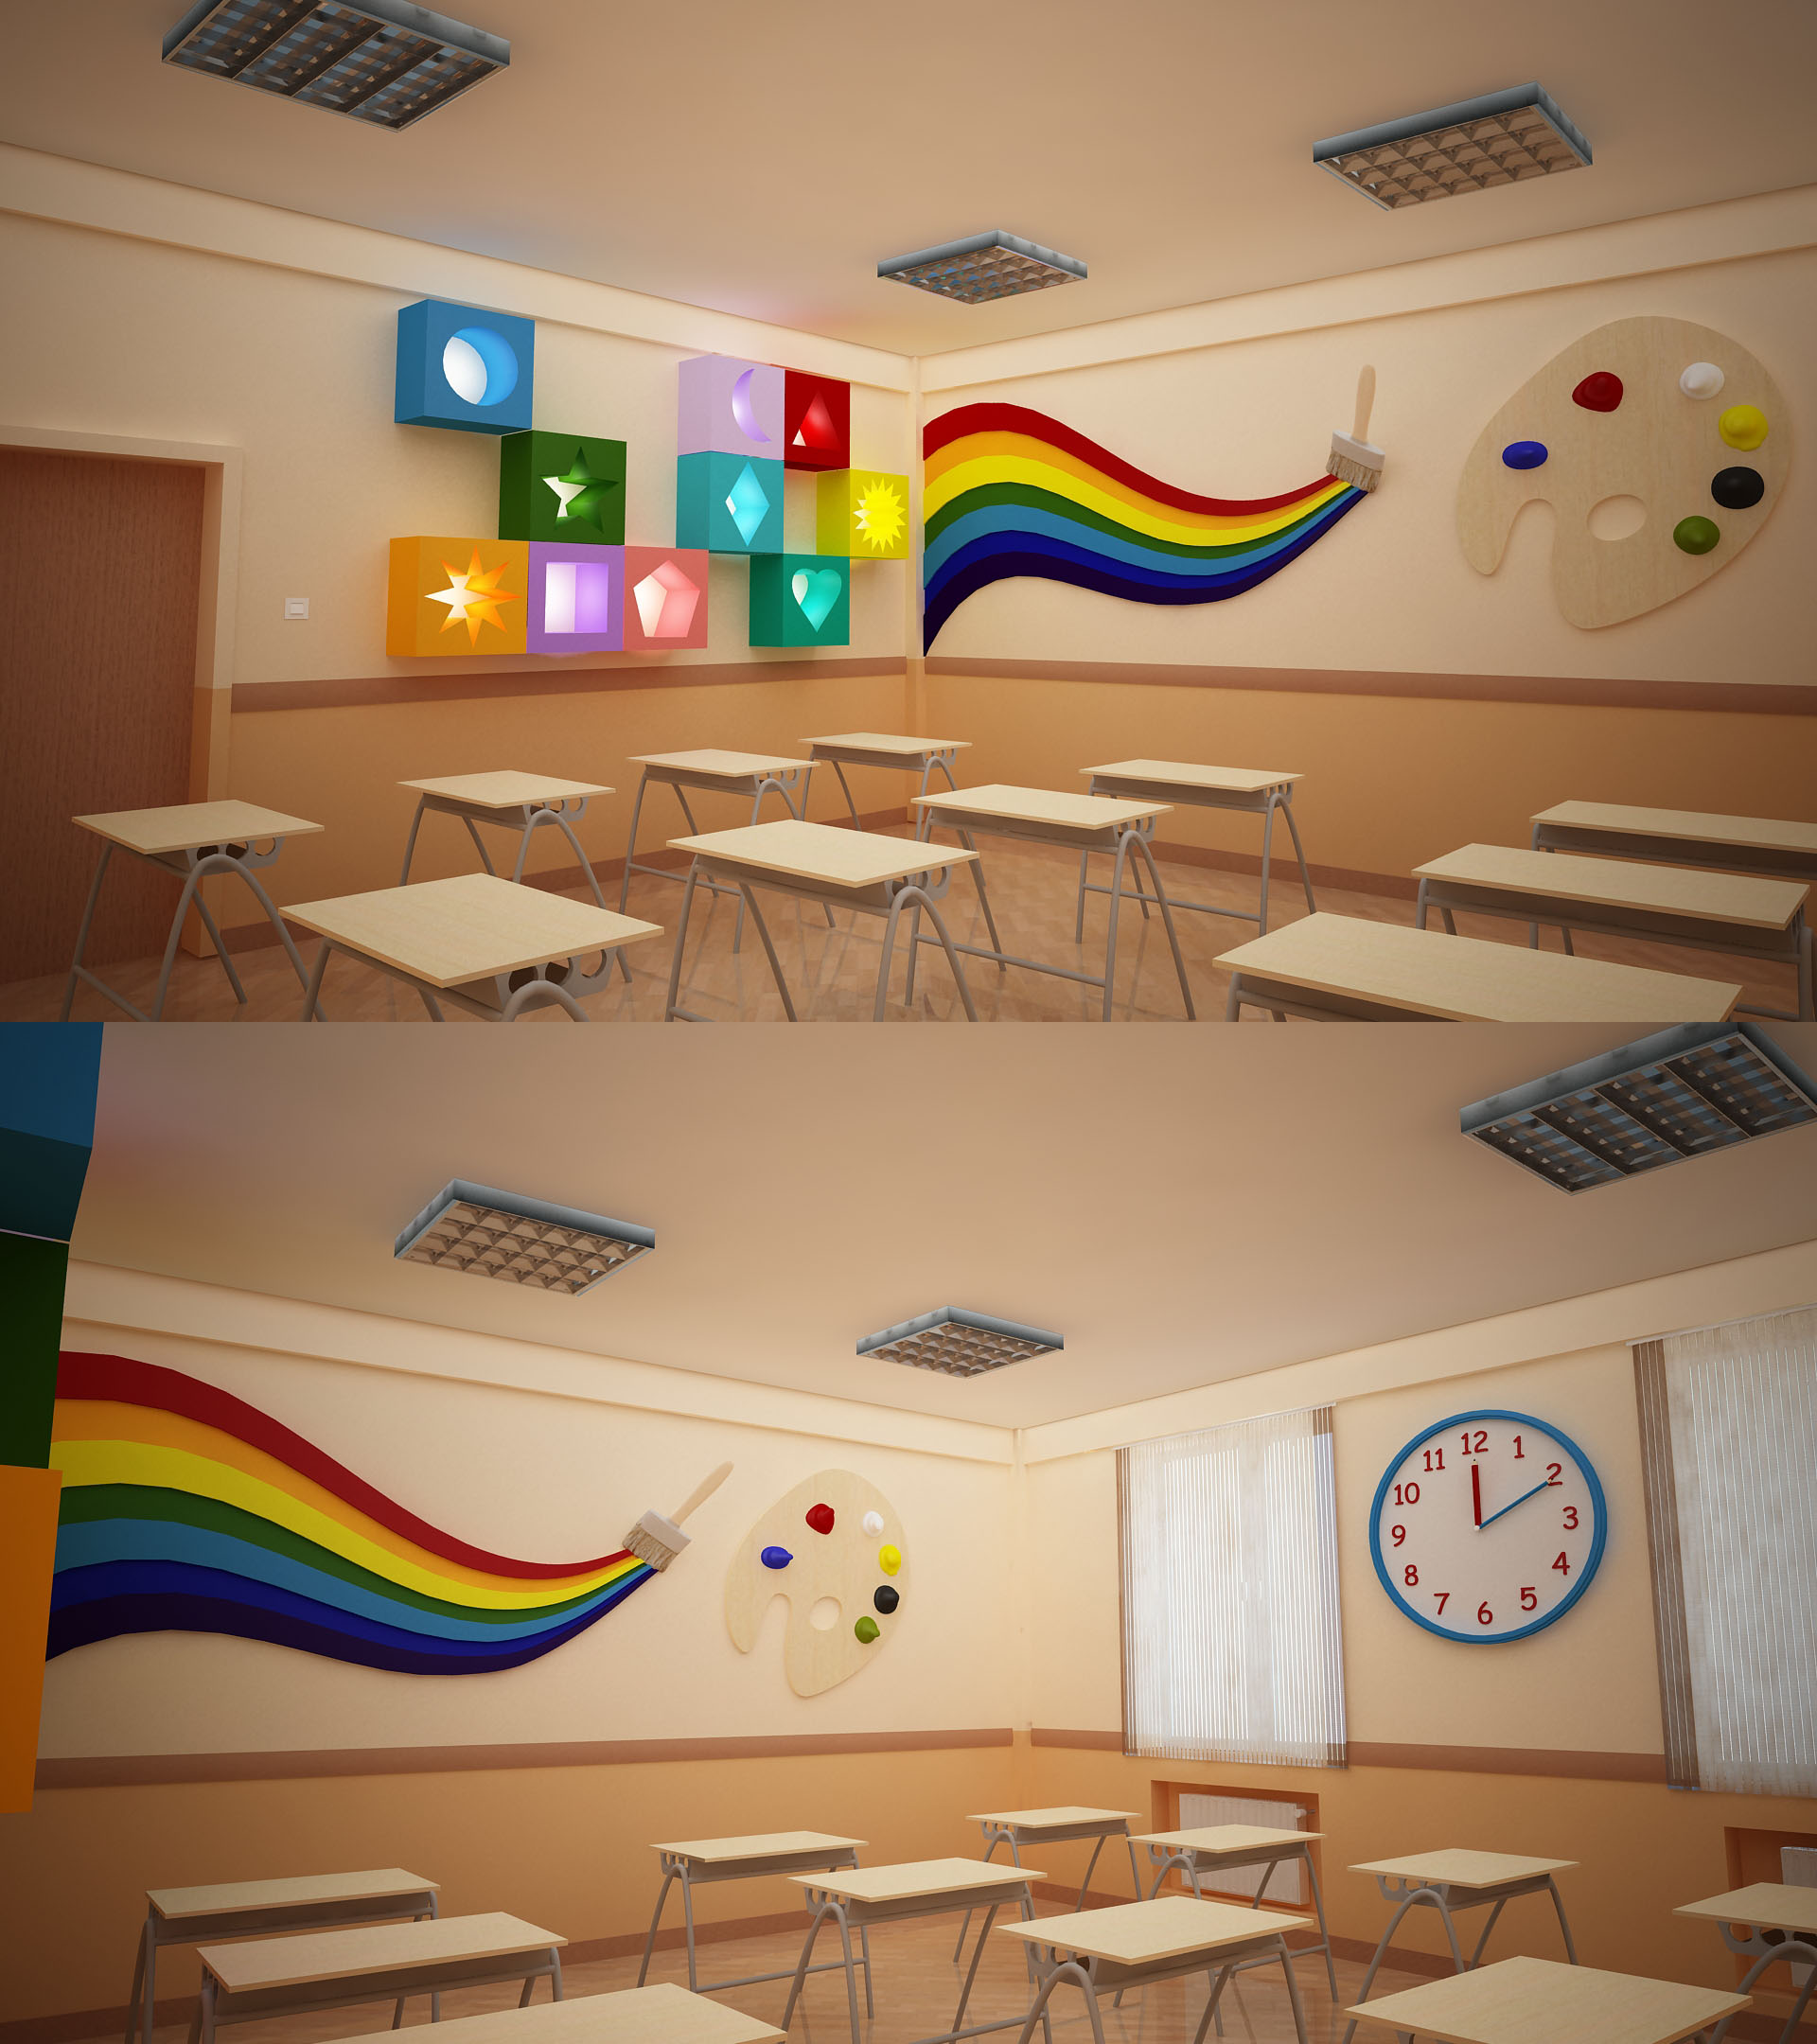 Classroom Wall Decorations Primary School : Bms baku modern school primary classroom design by